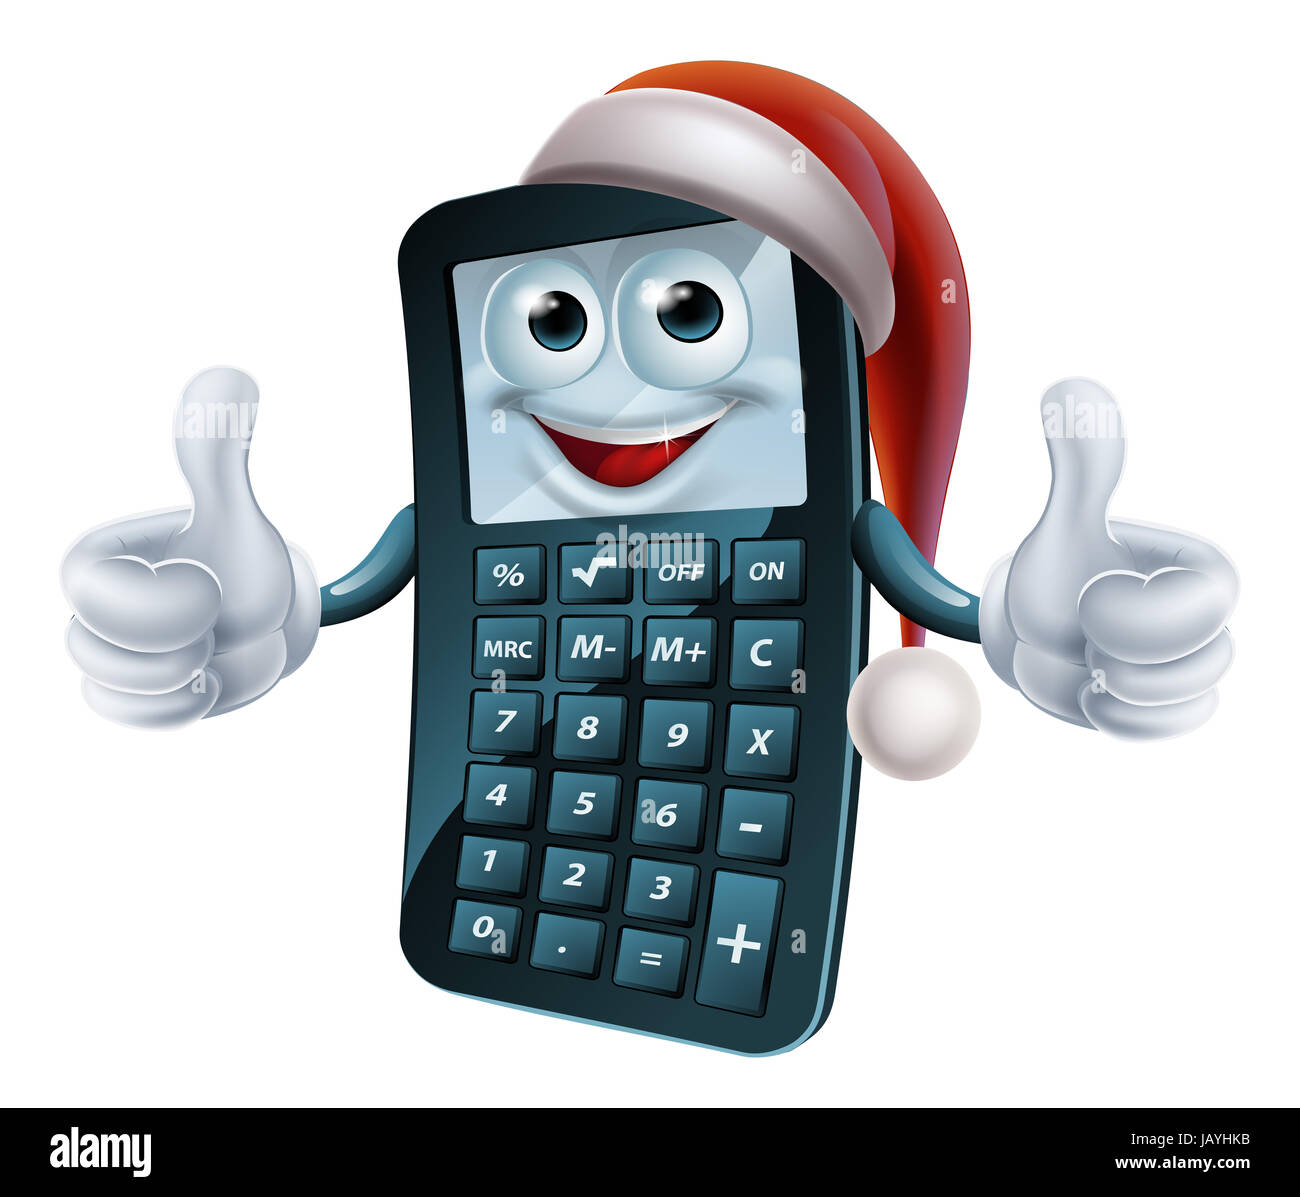 Cartoon Calculator Math School Stock Photos & Cartoon Calculator ...